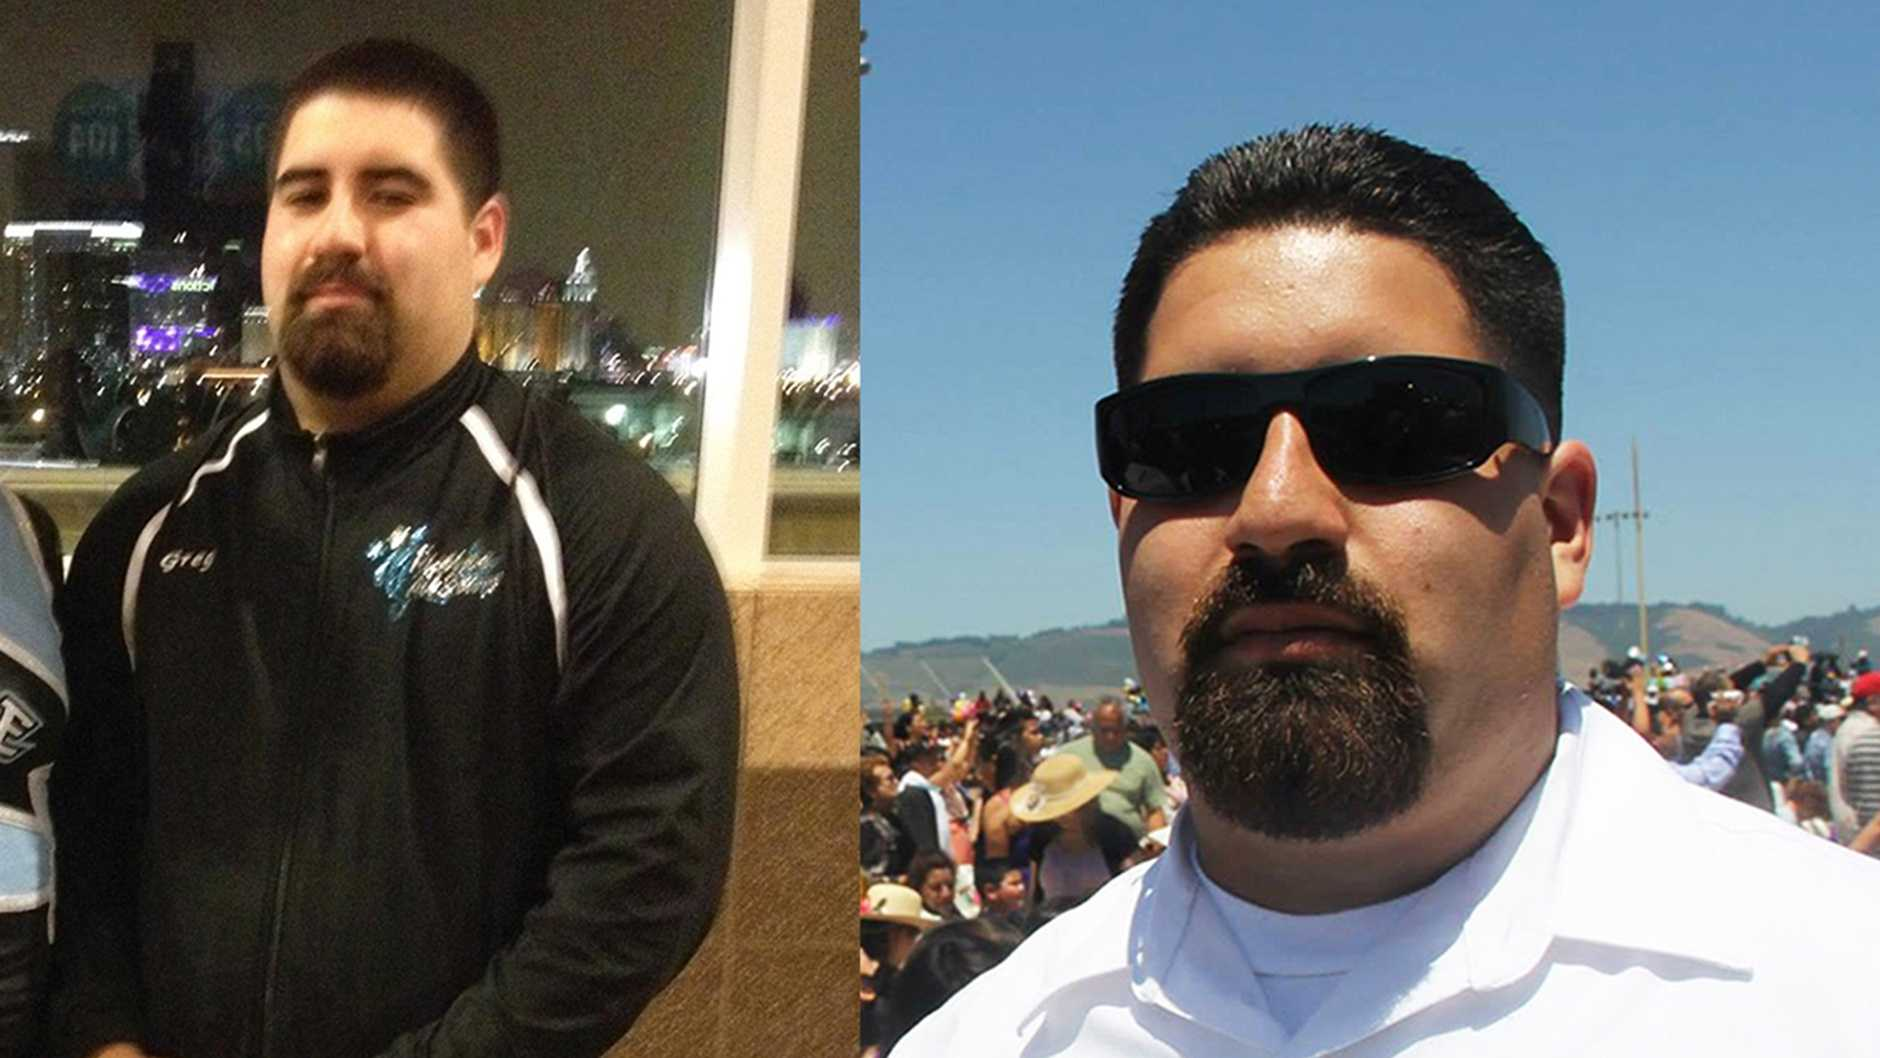 Gregory Uvalles, 23, of Watsonville, coaches cheerleading.